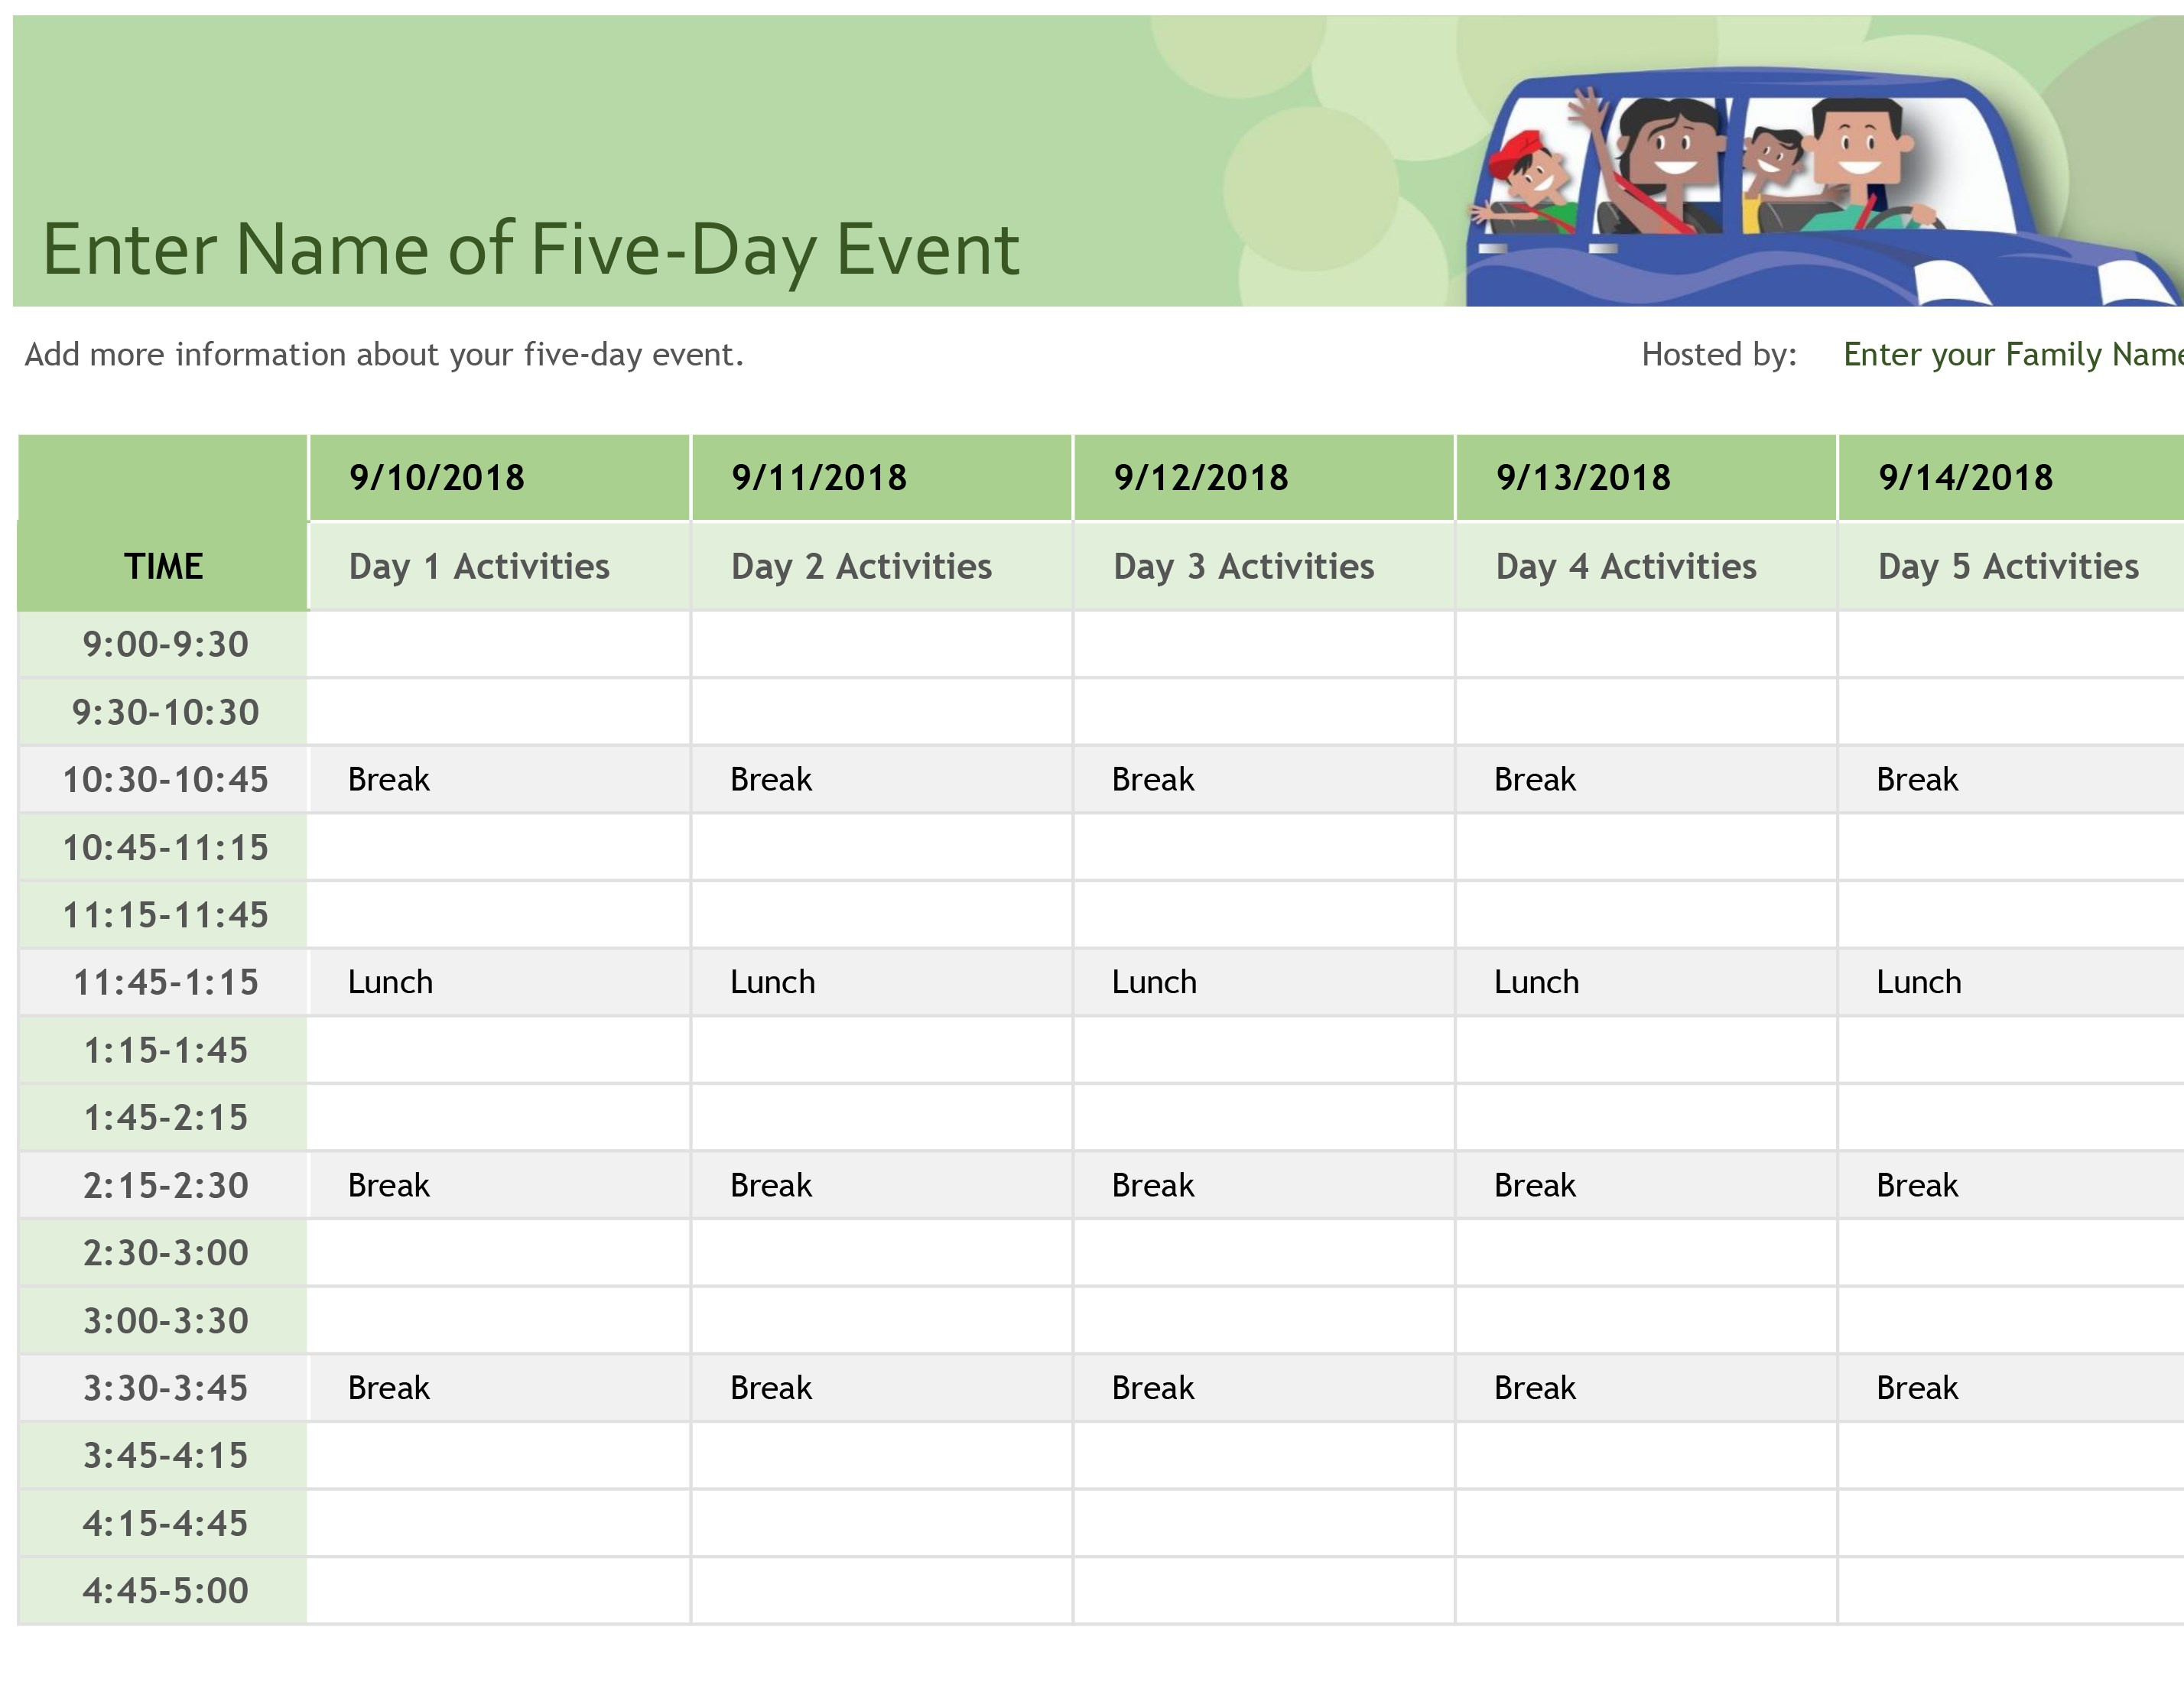 Excel Employee Schedule Mplate Shift Rotation Yearly | Smorad throughout 3 Day Shift Restaurant Template Sheets Excel